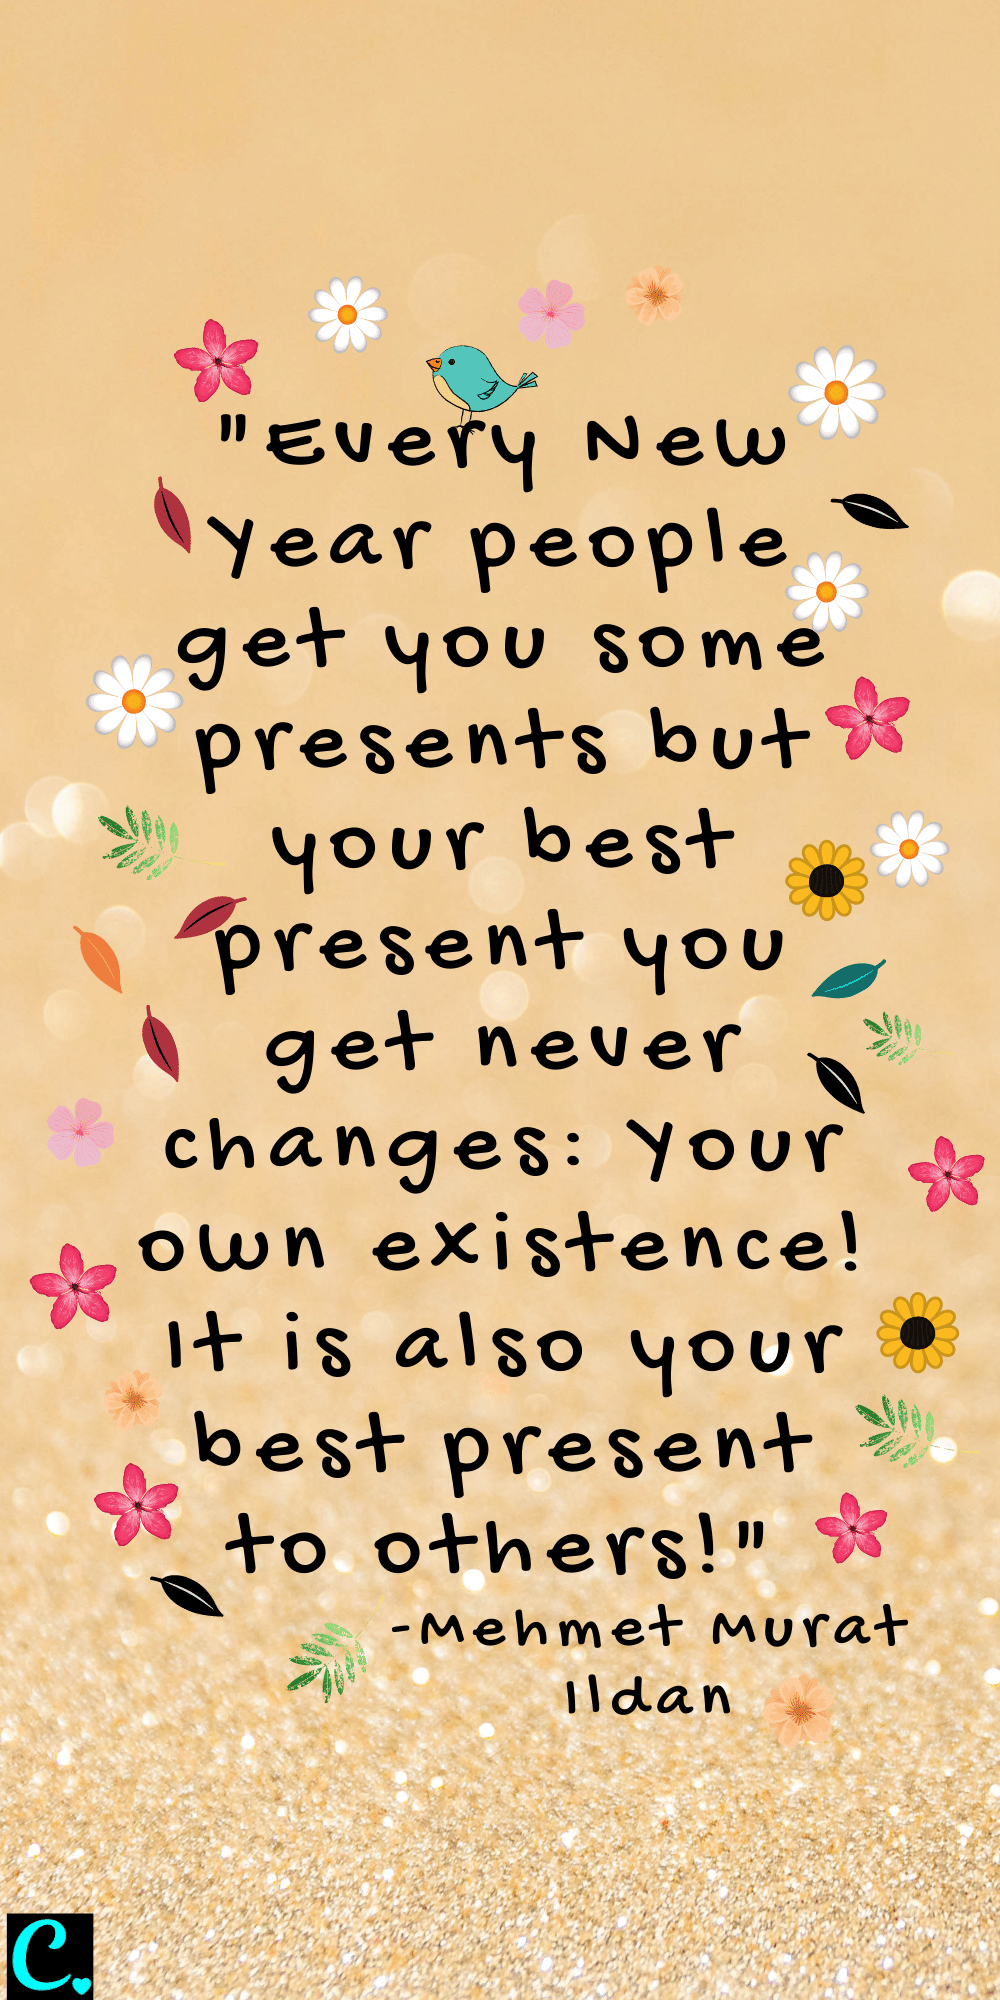 """""""Every New Year people get you some presents but your best present you get never changes: Your own existence! It is also your best present to others!"""""""